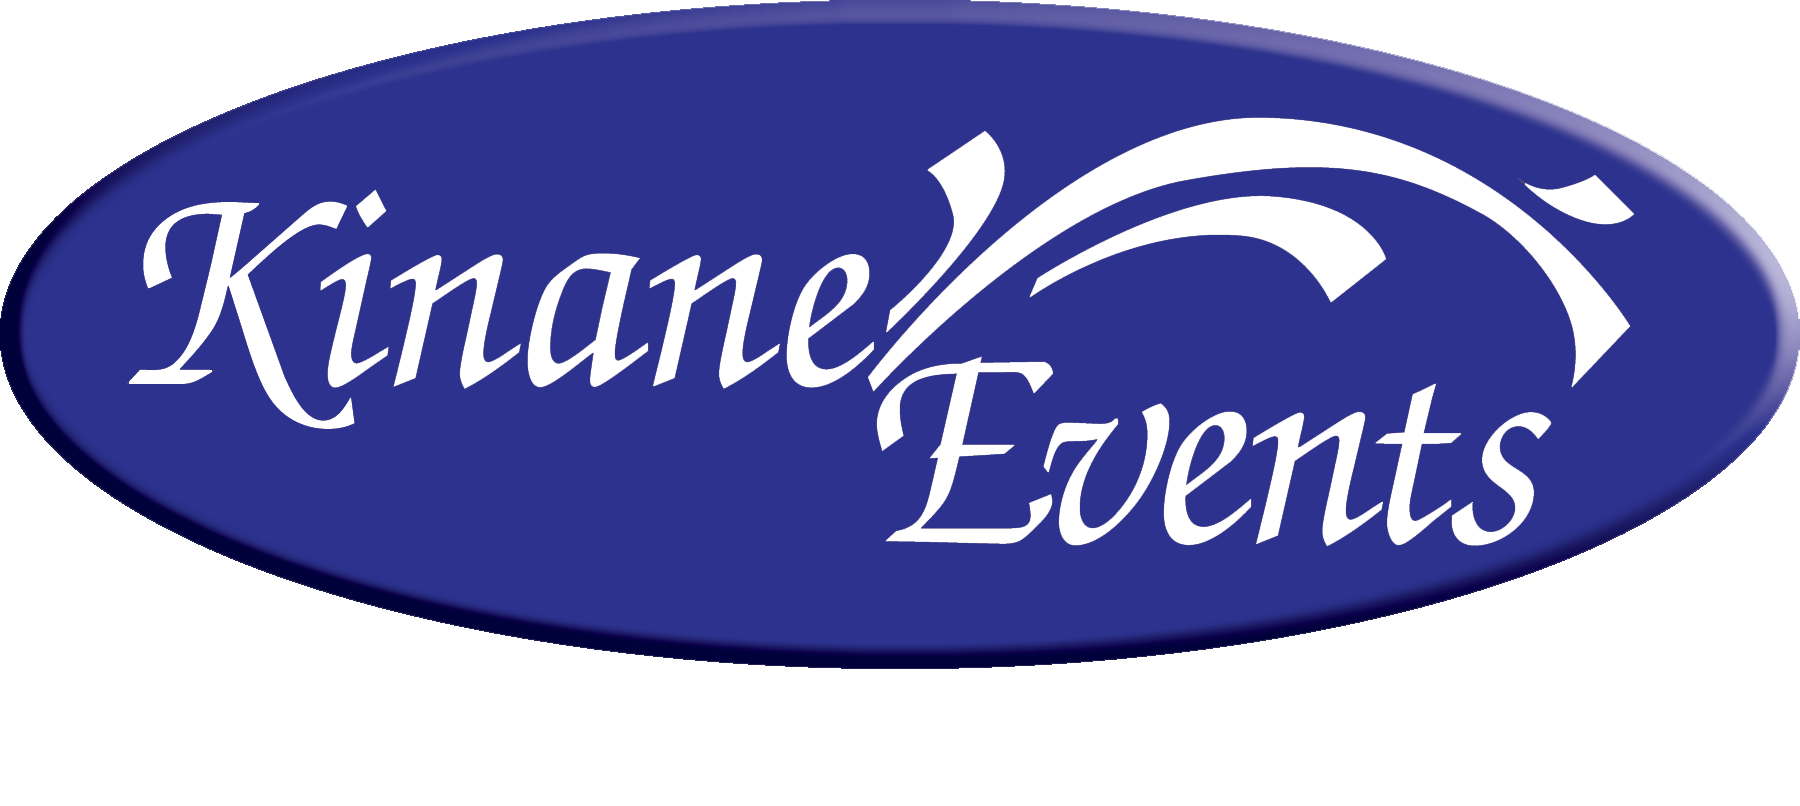 Kinane Events